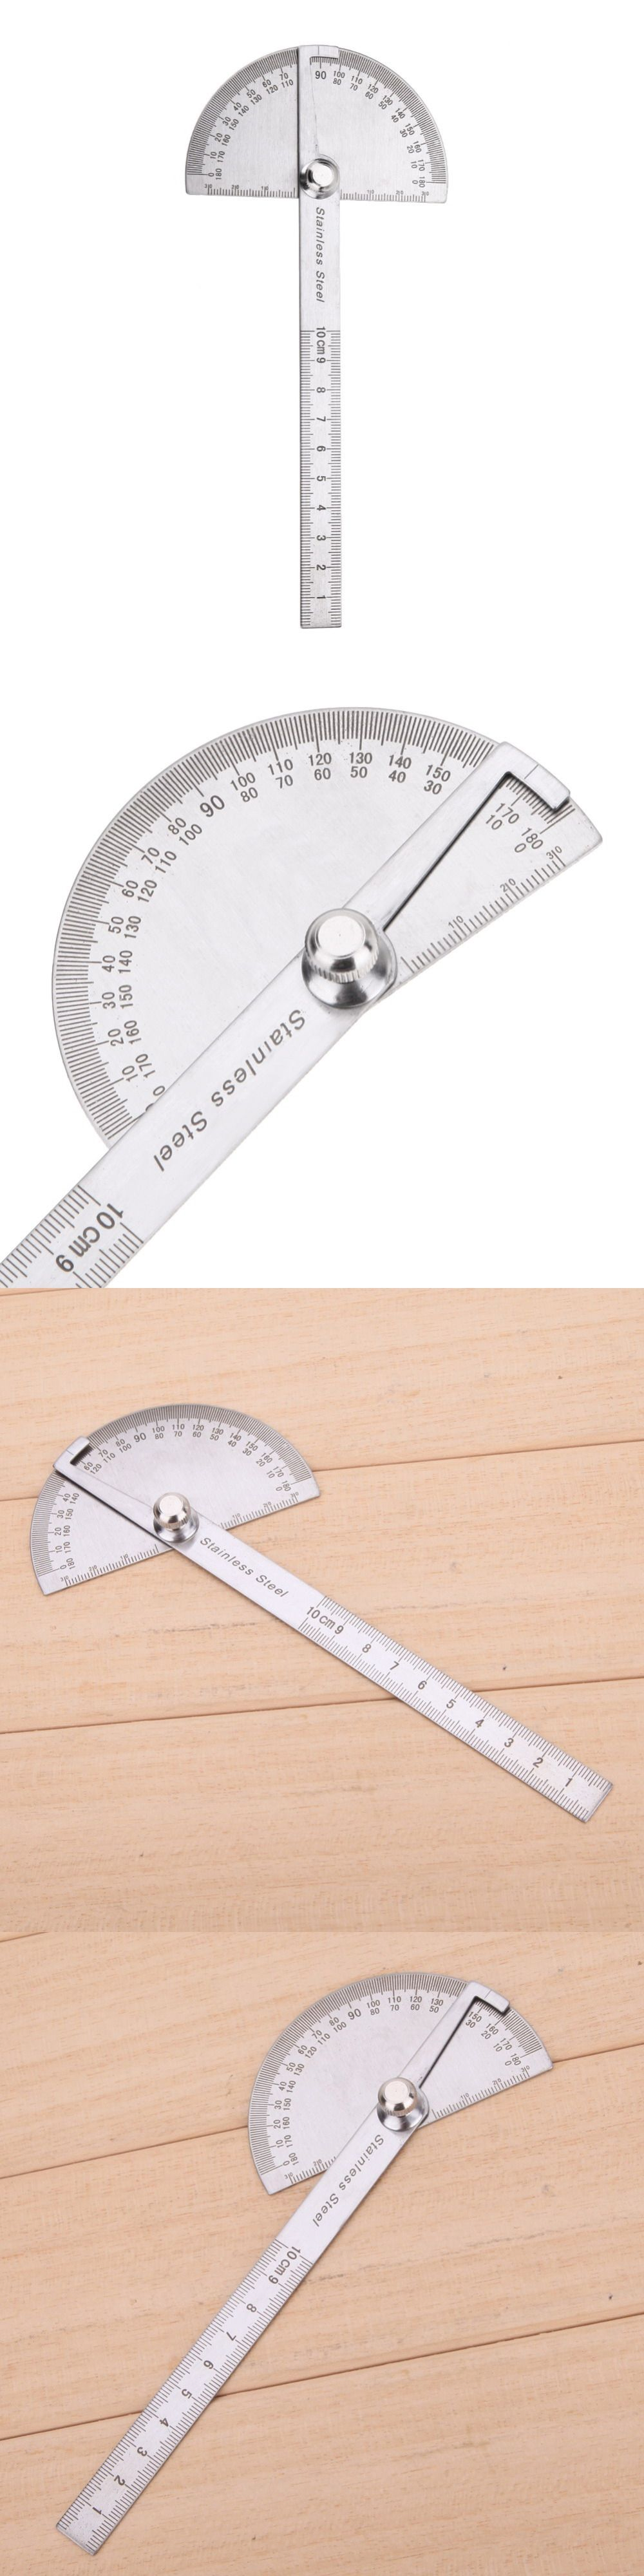 Stainless Steel 180 Degree Protractor Angle Finder Rotary Measuring Ruler For Woodworking Tools Angles